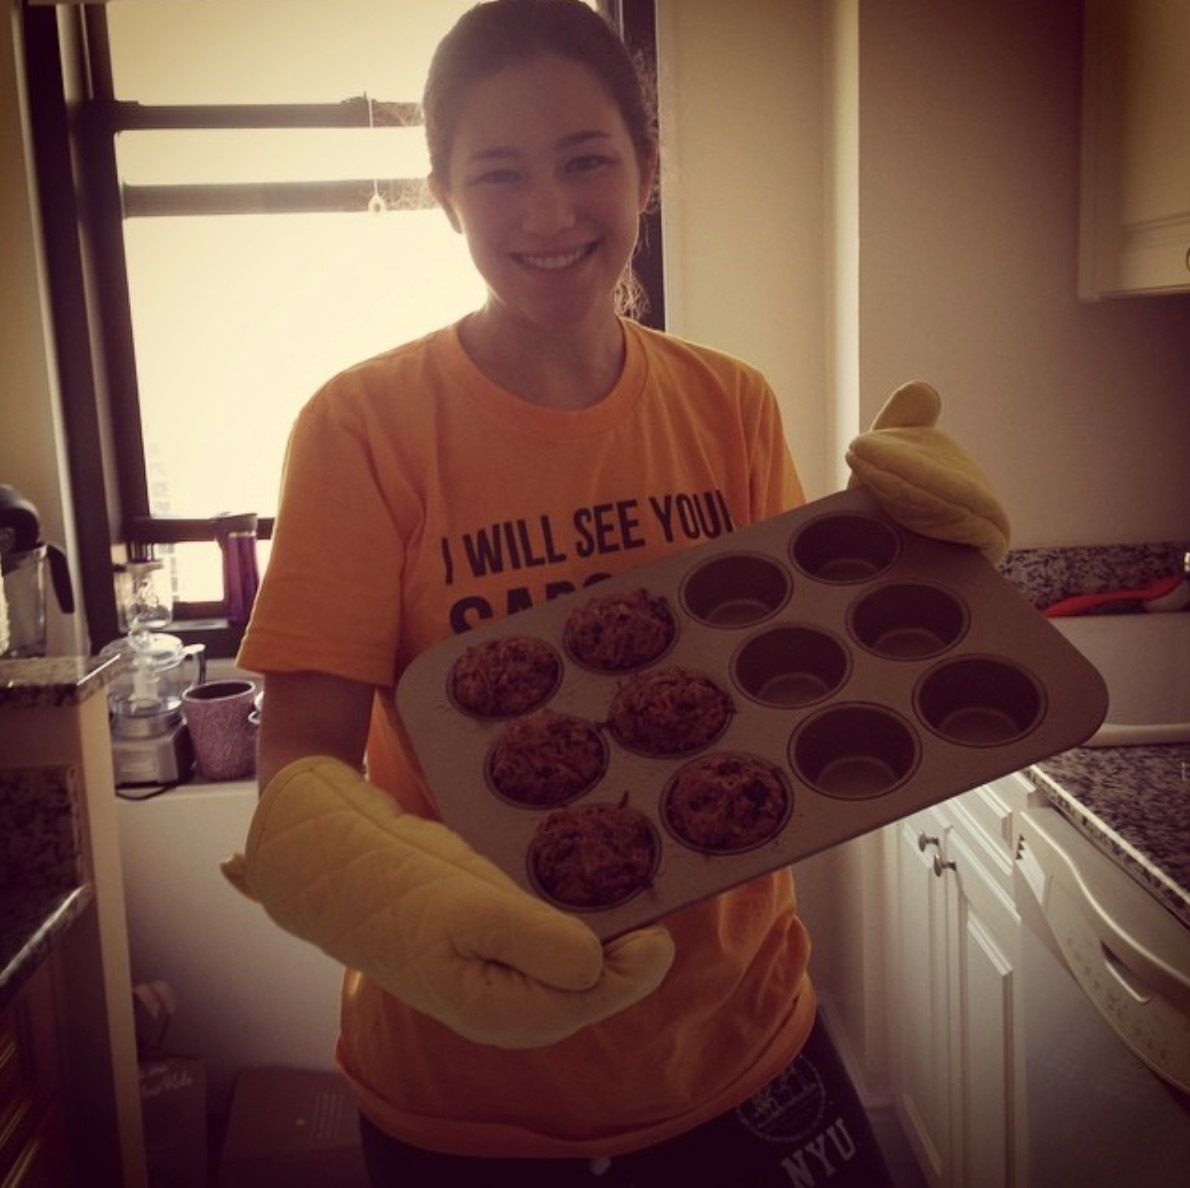 Allie Spector, a Hewlett High graduate, launched her HomeBaked by Allie online bakery business earlier this month.